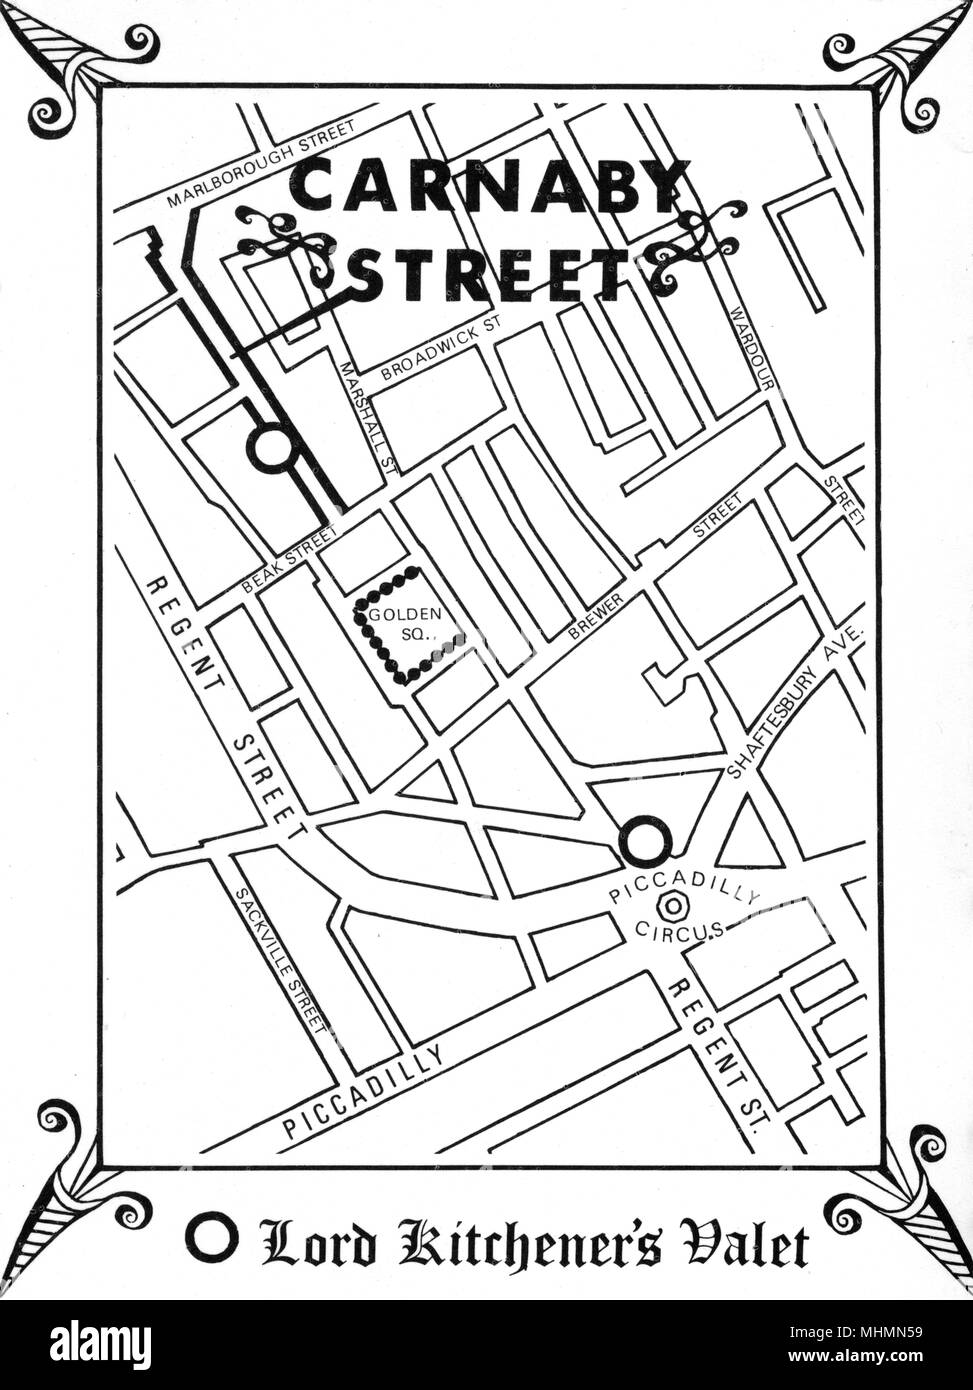 Map of showing the location of epicentre of sixties cool, Carnaby Street, in central London, as directed by one of the leading male boutiques, Lord Kitchener's Valet.       Date: 1966 - Stock Image